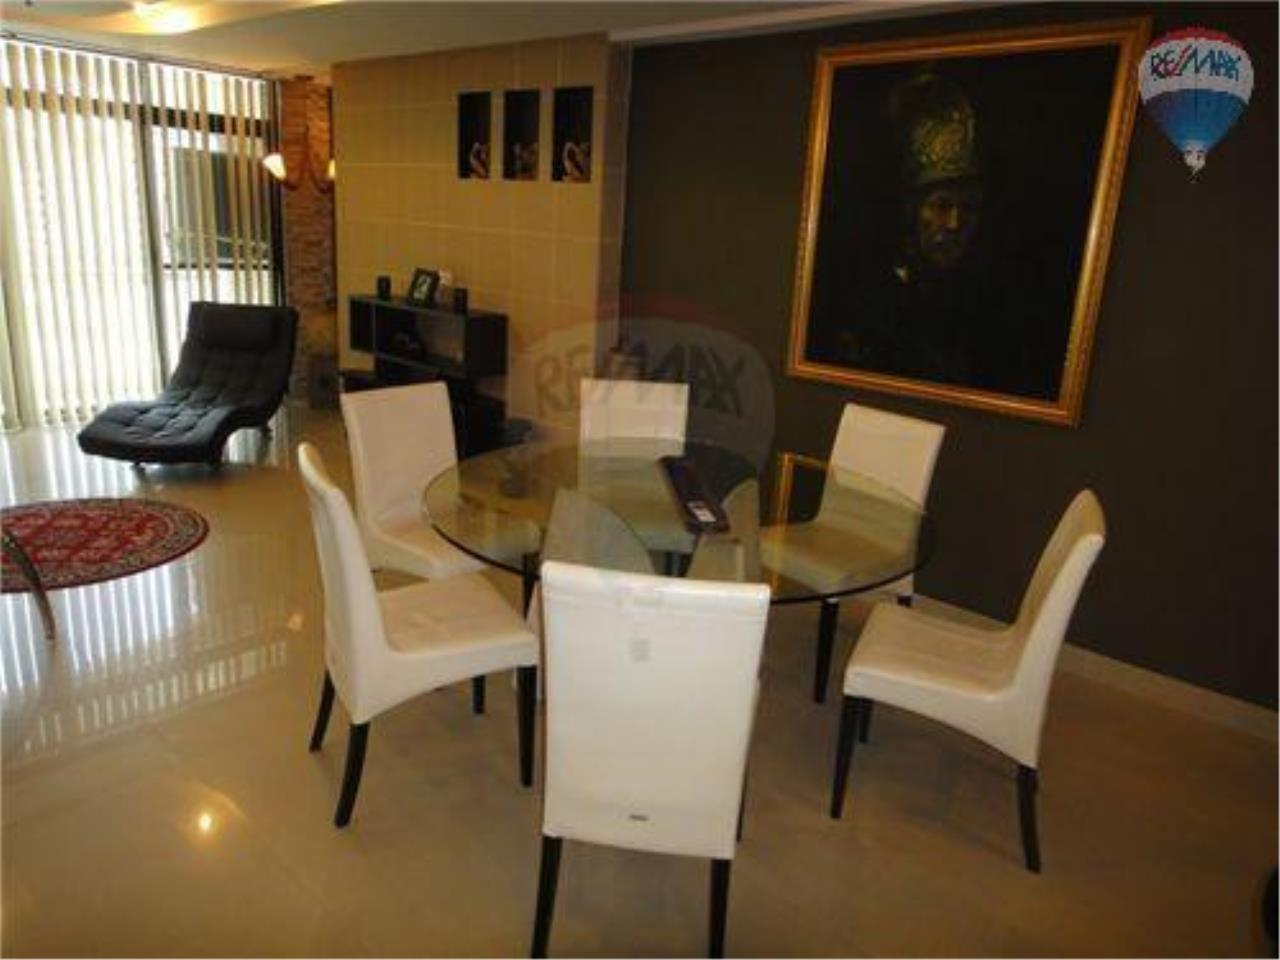 RE/MAX Properties Agency's 2 Bedroom Apartment - Baan Prompong Condo  2